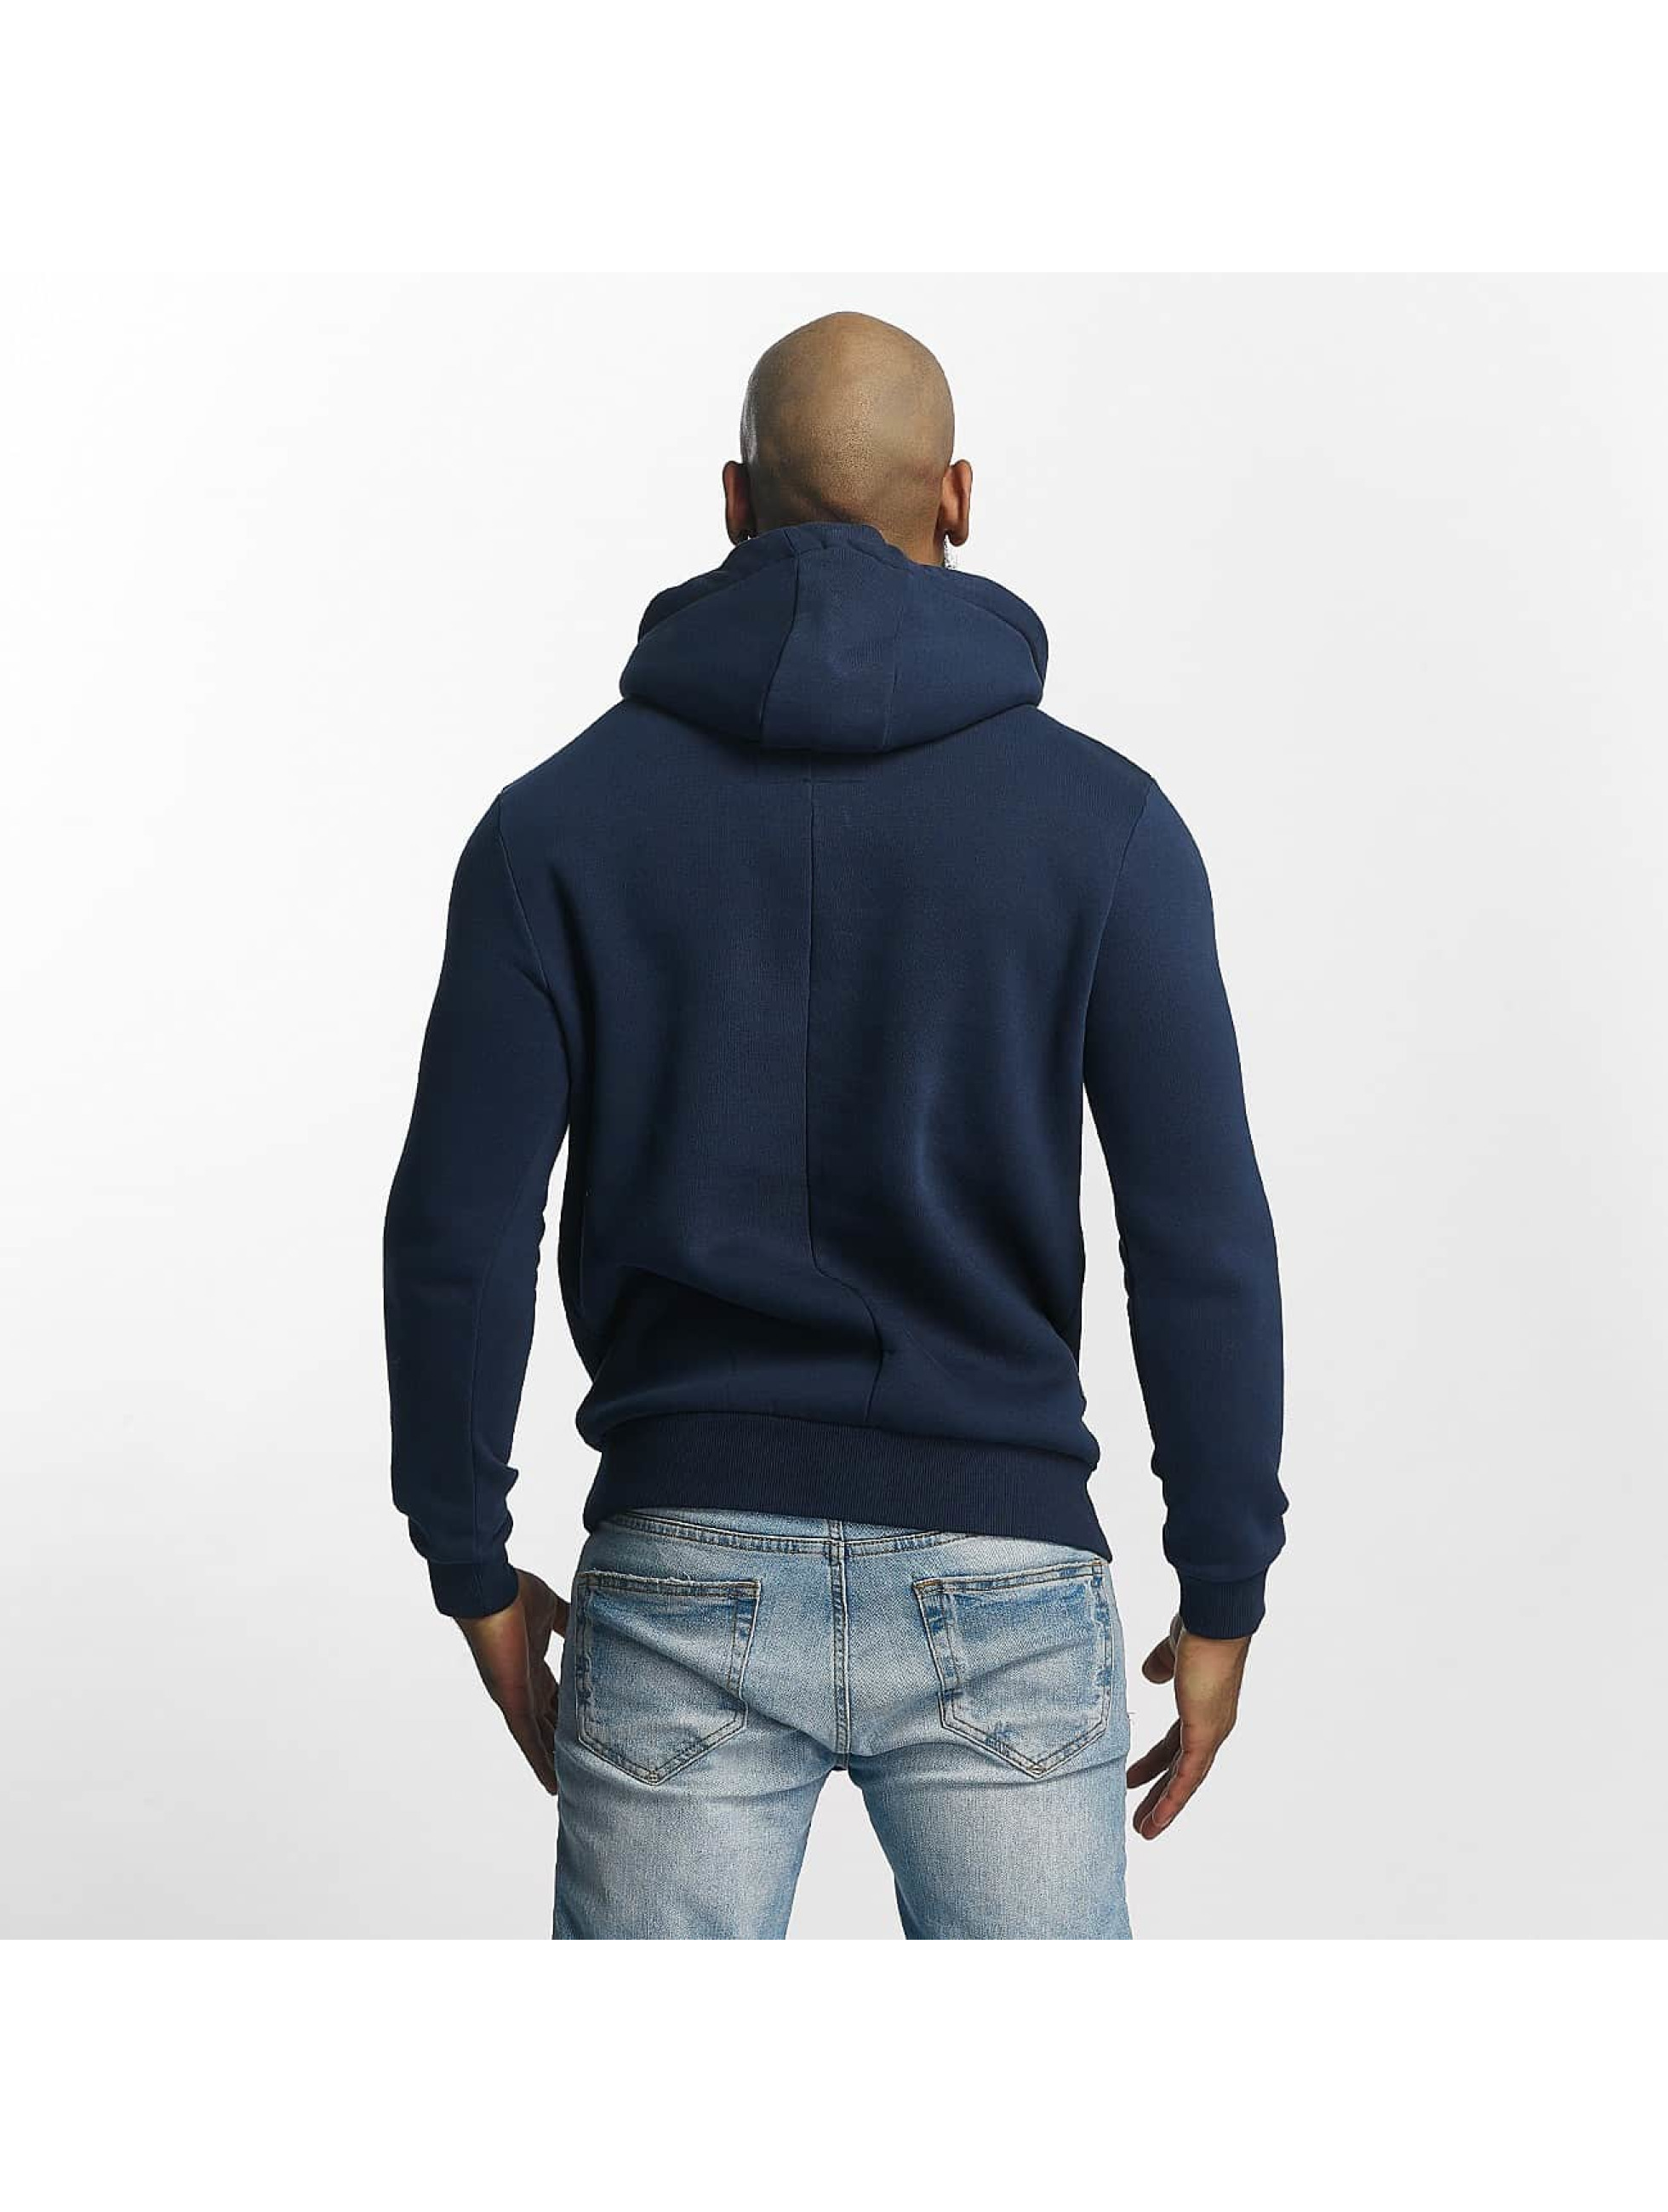 Homeboy Hoodie Neighbor blue